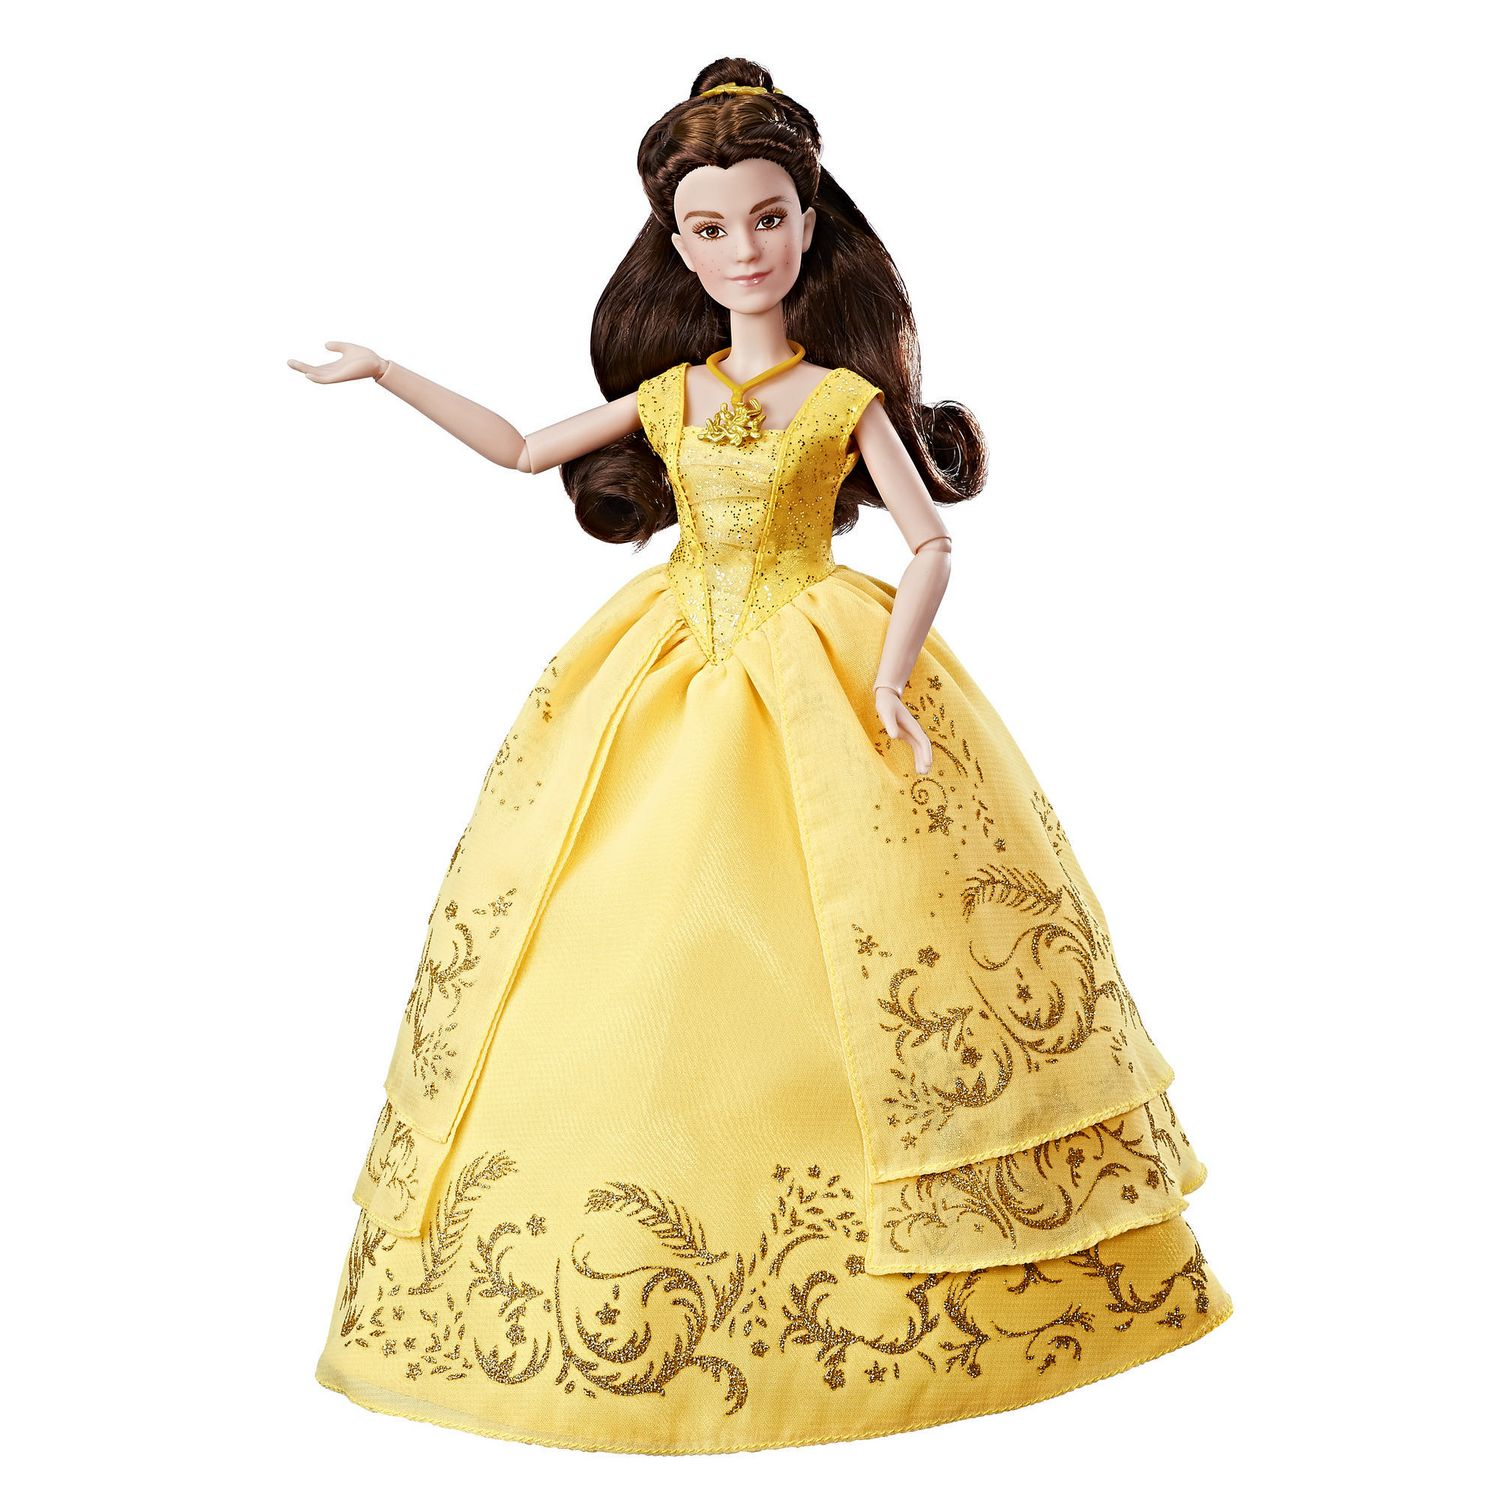 belle princesses from disney